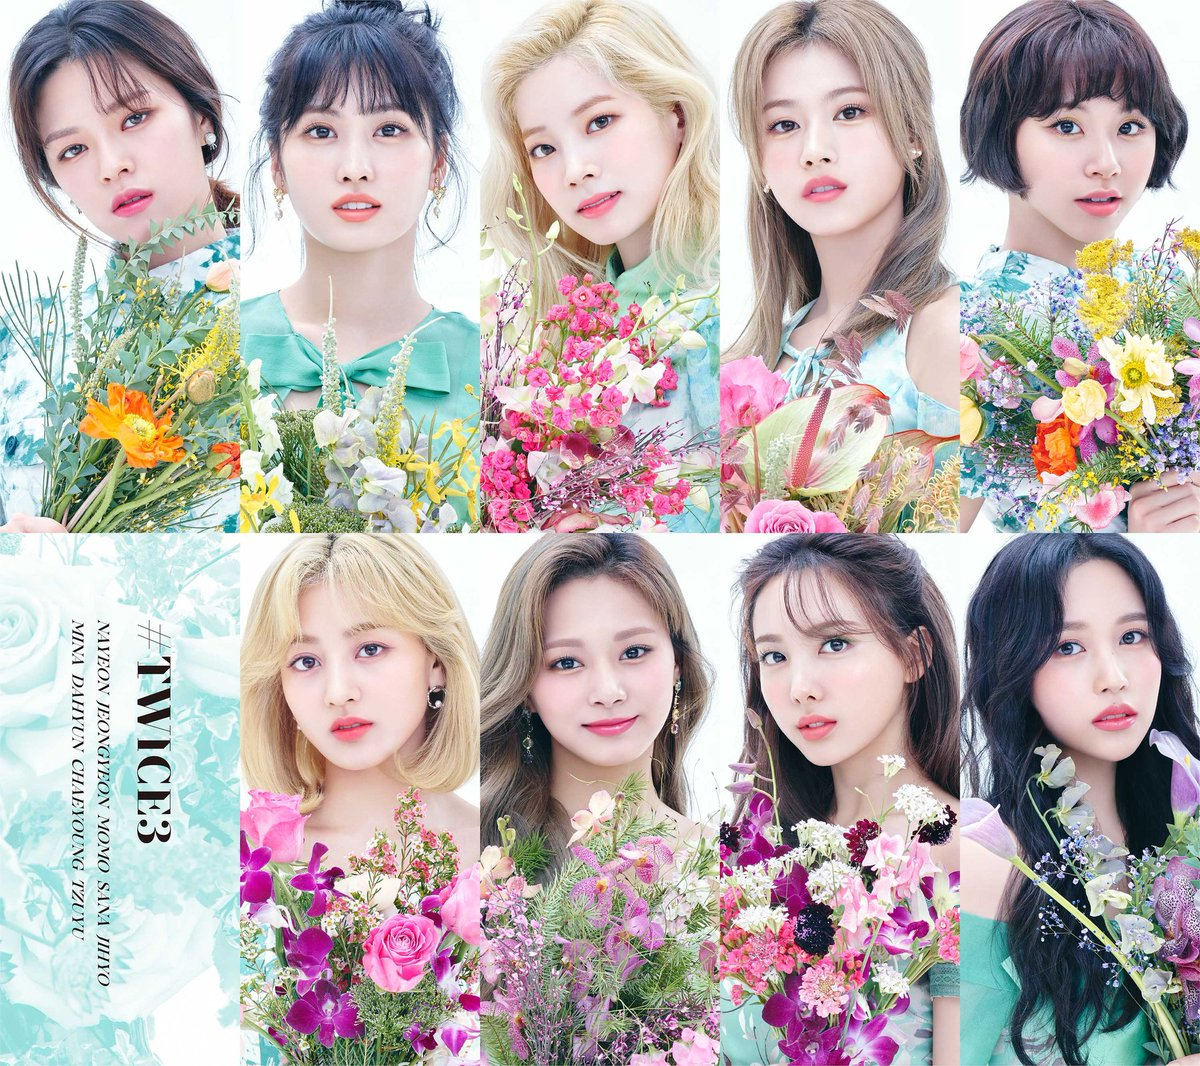 This is the new DVD content that we'll be getting from #TWICE3   ・FANCY -Japanese ver.- MV  ・FANCY -Japanese ver.- MV Making ・#TWICE3 Jacket Shoot Making ・Making movie of TWICE WORLD TOUR 2019 'TWICELIGHTS' IN JAPAN <br>http://pic.twitter.com/el5bS5F4Xw